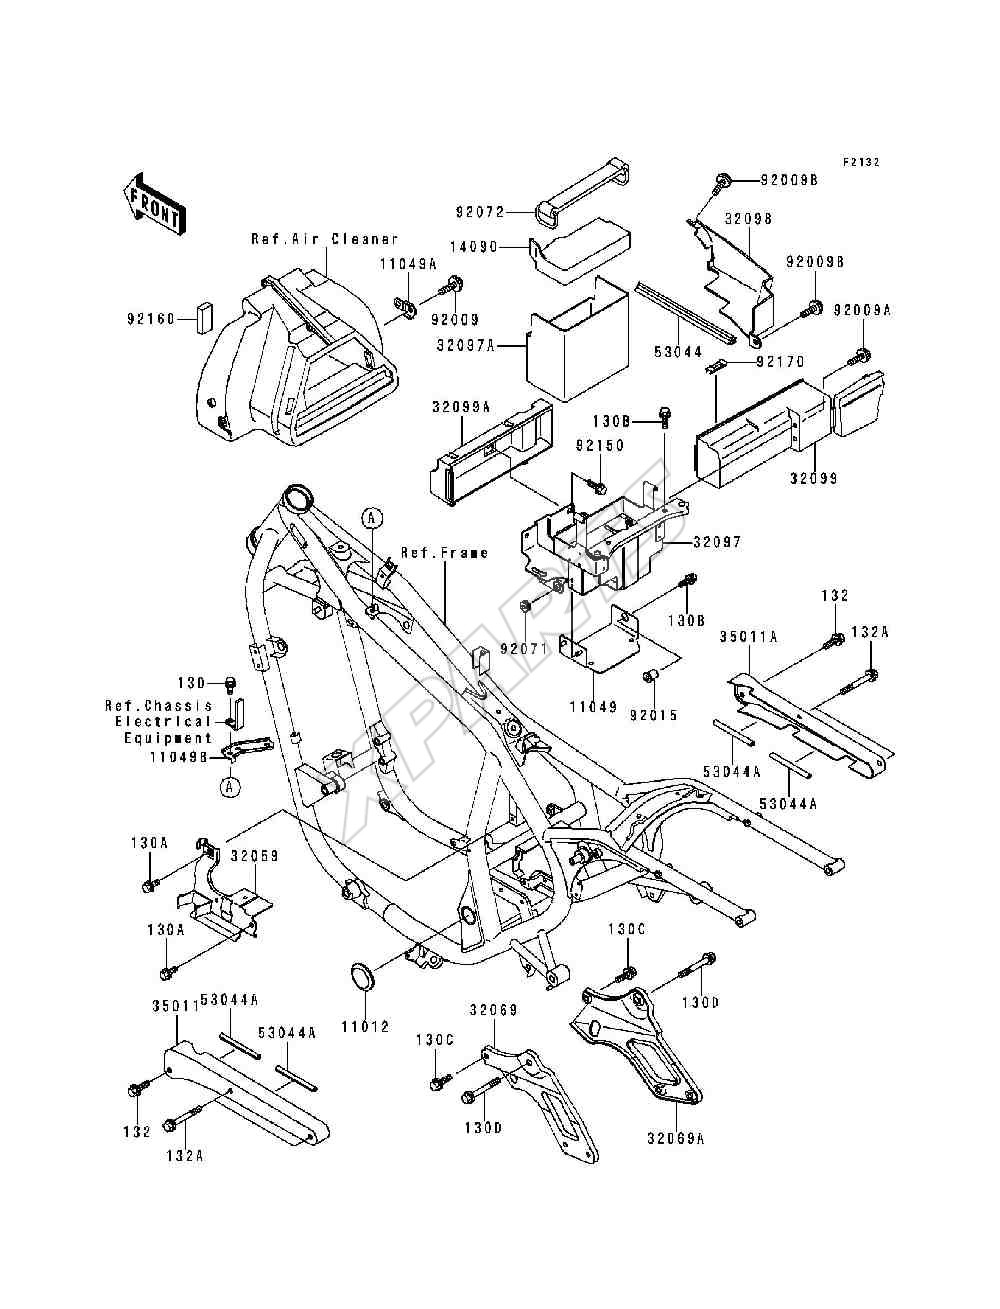 hight resolution of kawasaki mule 3010 fuel pump wiring diagram kawasaki mule 2002 kawasaki lakota 300 wiring diagram 98 kawasaki lakota 300 wiring diagram